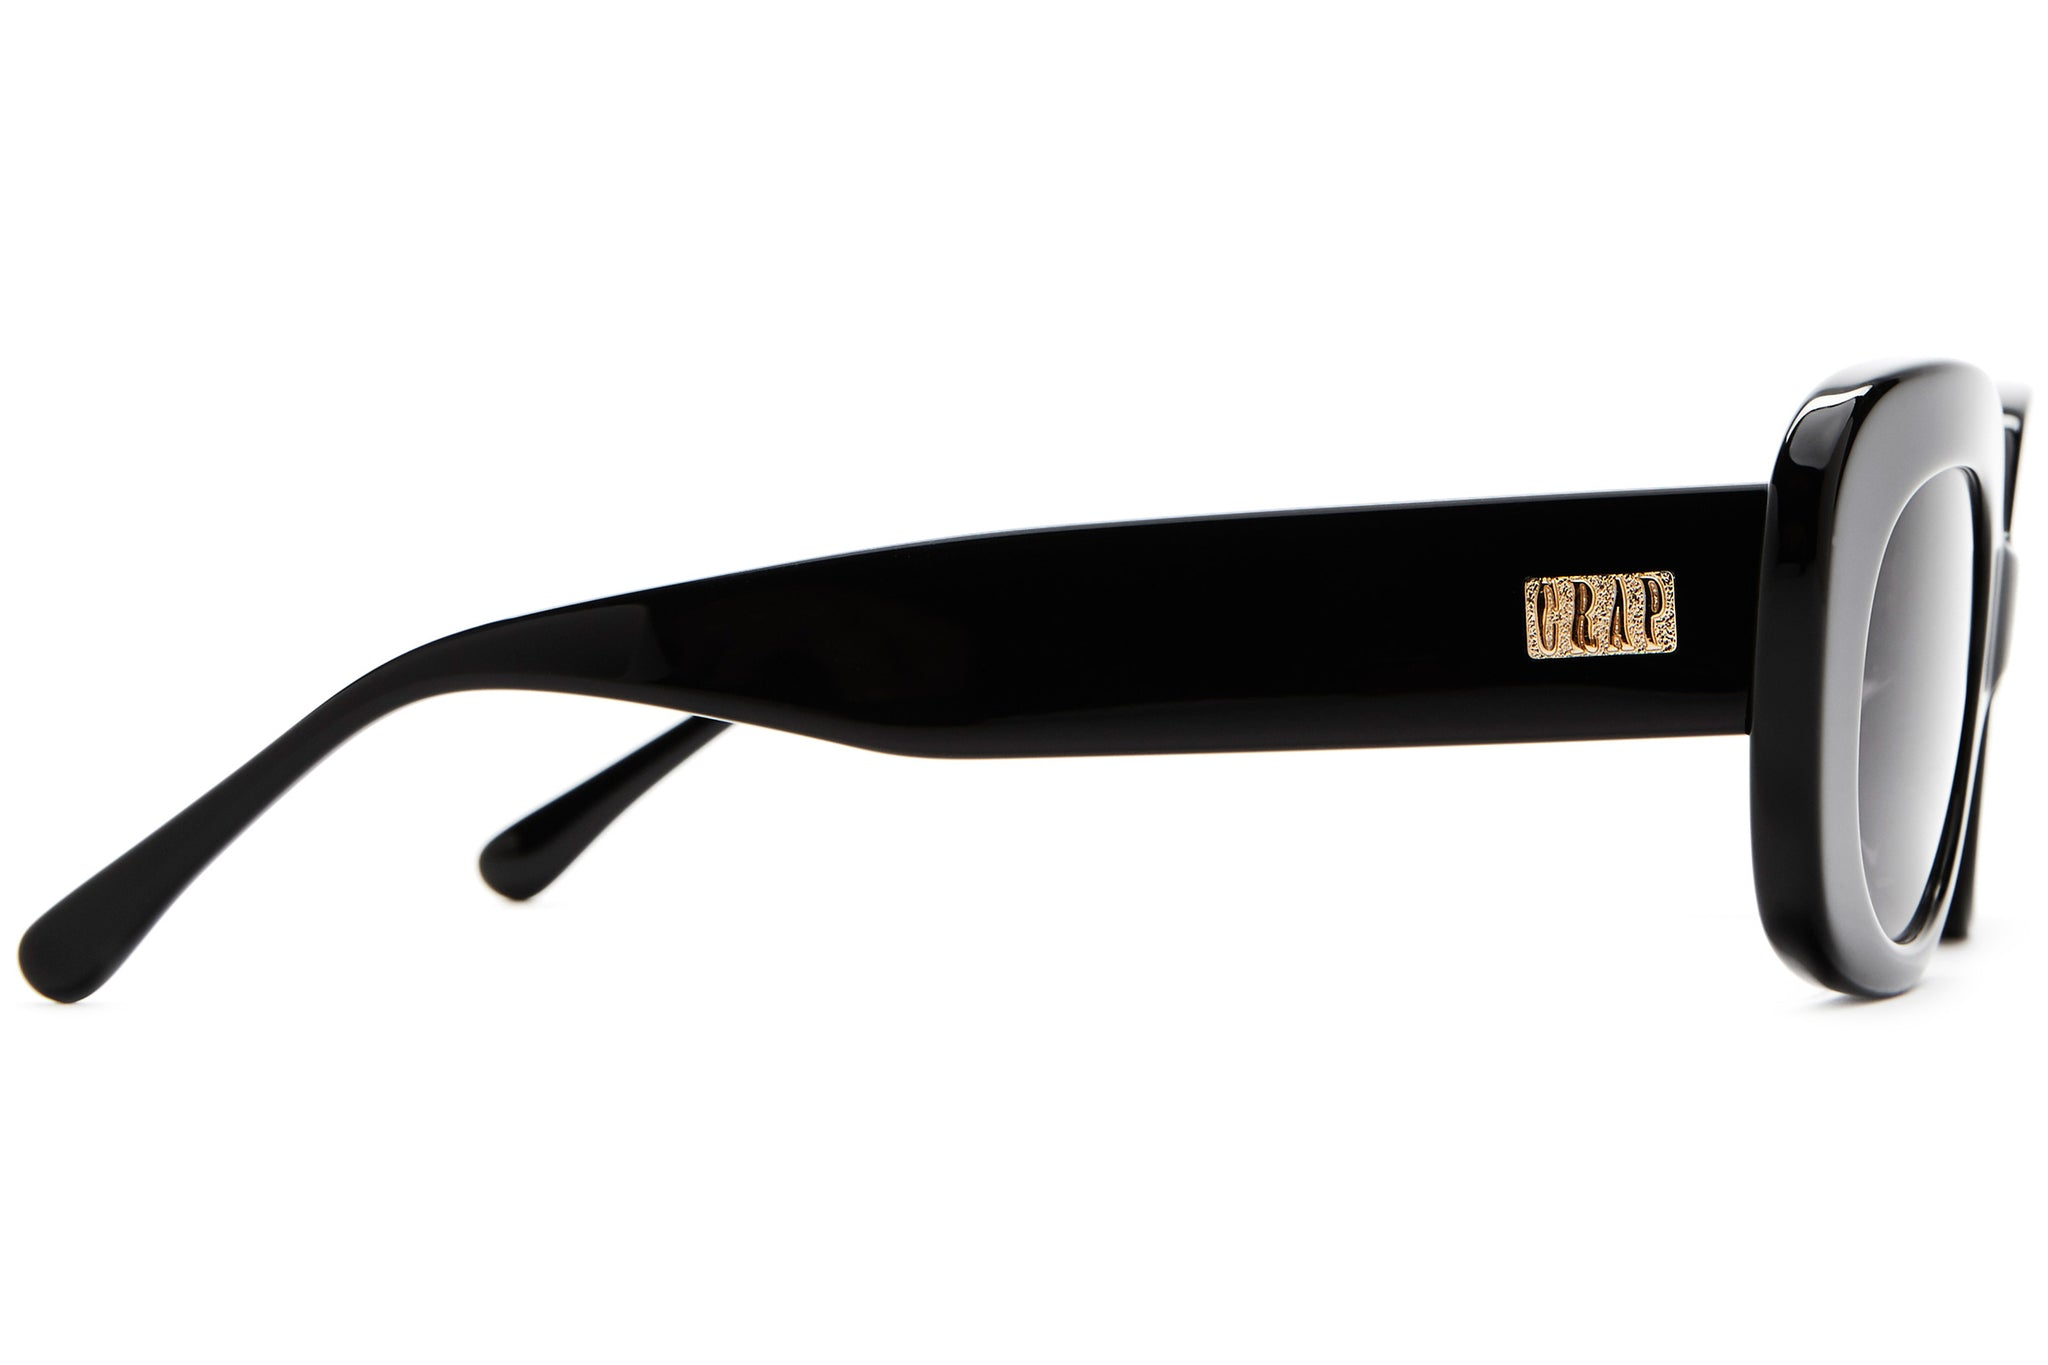 The Velvet Mirror - Black - / Grey - Sunglasses